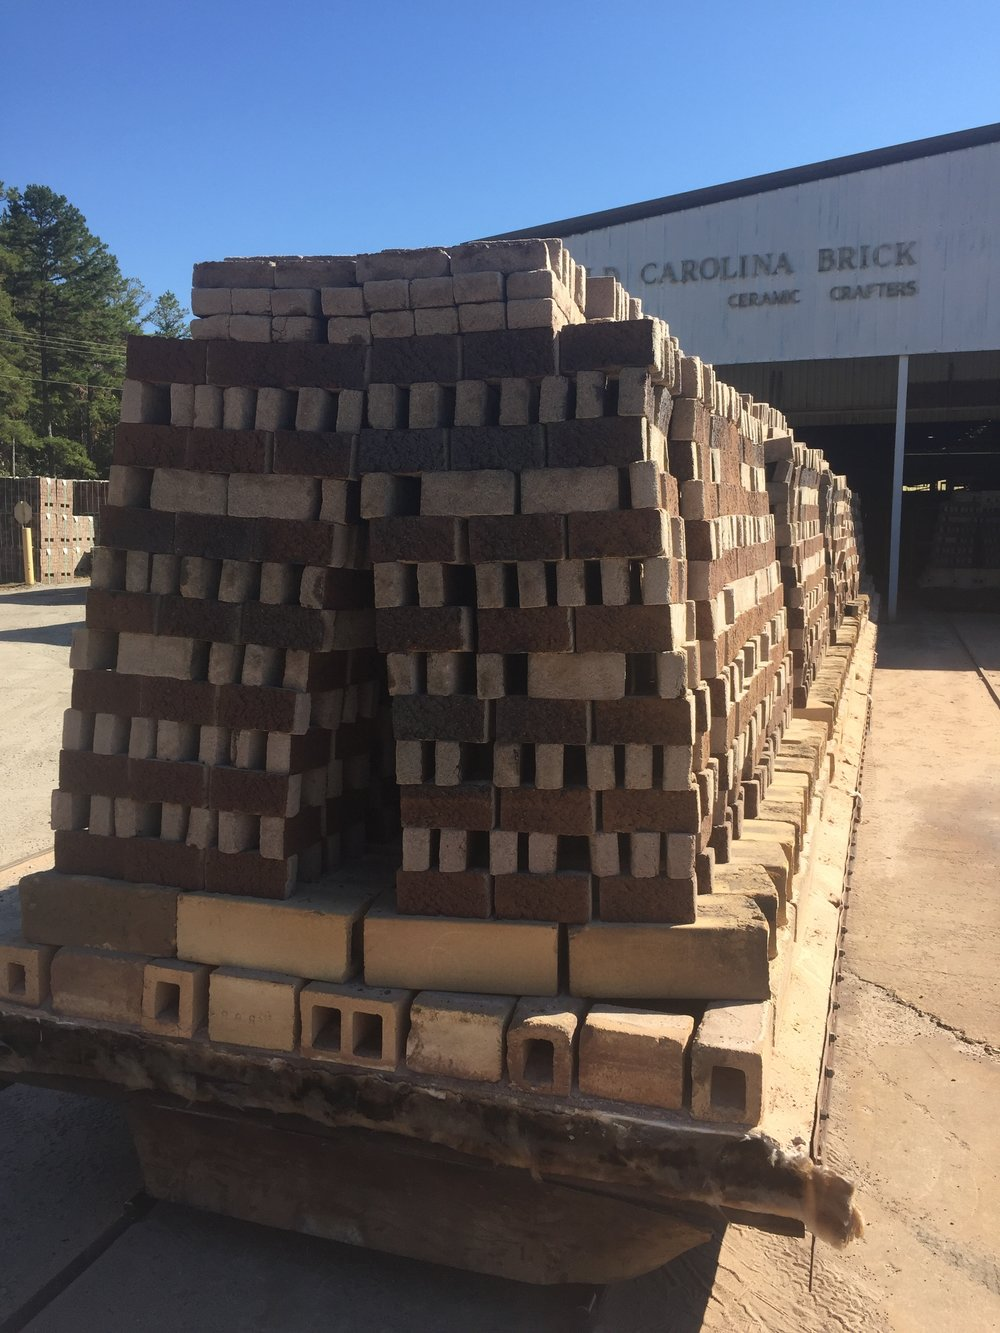 Trainload of brick fresh out of the kiln